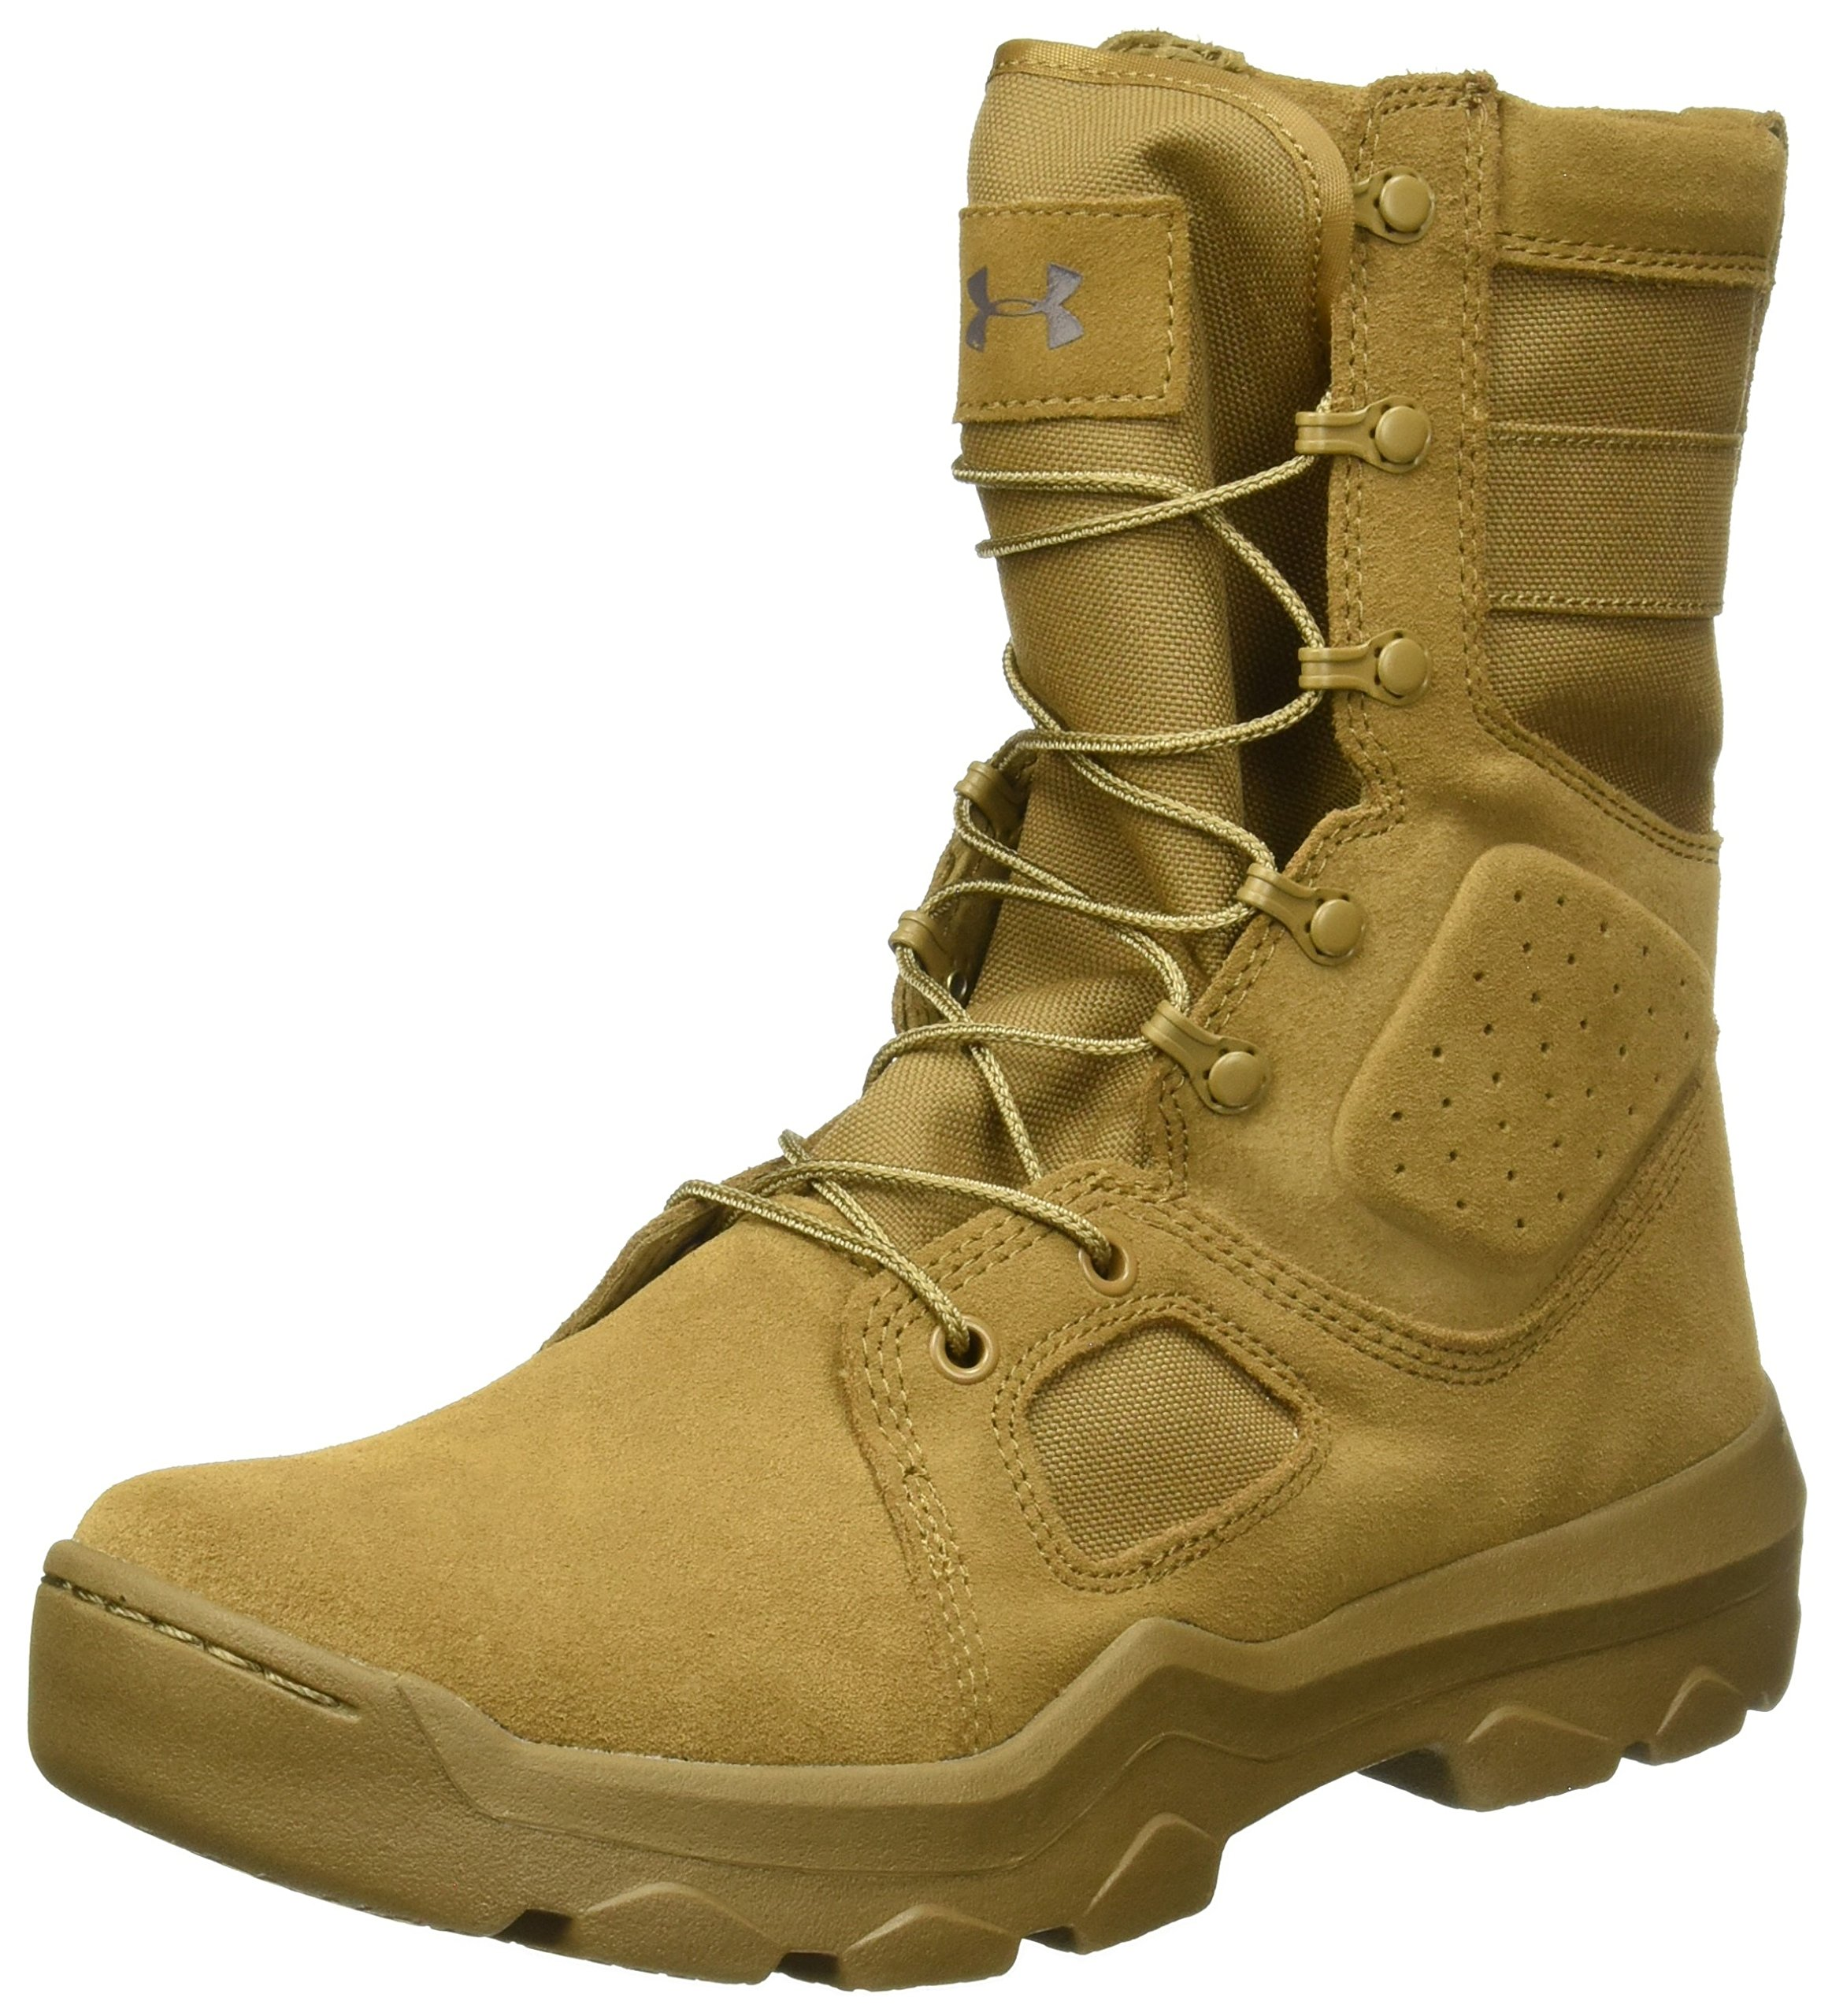 Under Armour Military Tactical Coyote